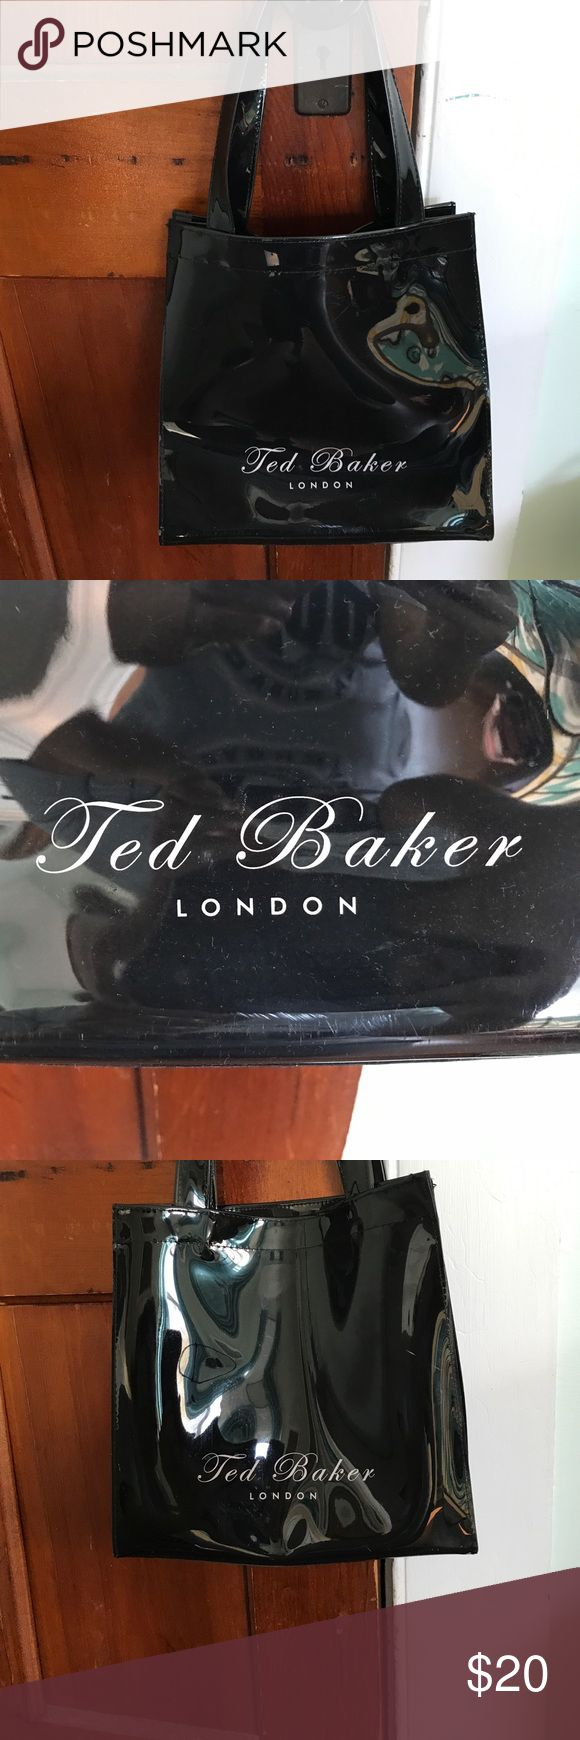 Ted Baker handbag Medium sized Ted Baker handbag. Authentic designer handbag. Very sturdy and durable. In great condition. One mark under the label on one side (as shown in picture) not really even noticeable. Never used ( scratched from storage). Has a zipper inside and very open tote like inside. Ted Baker London Bags Totes